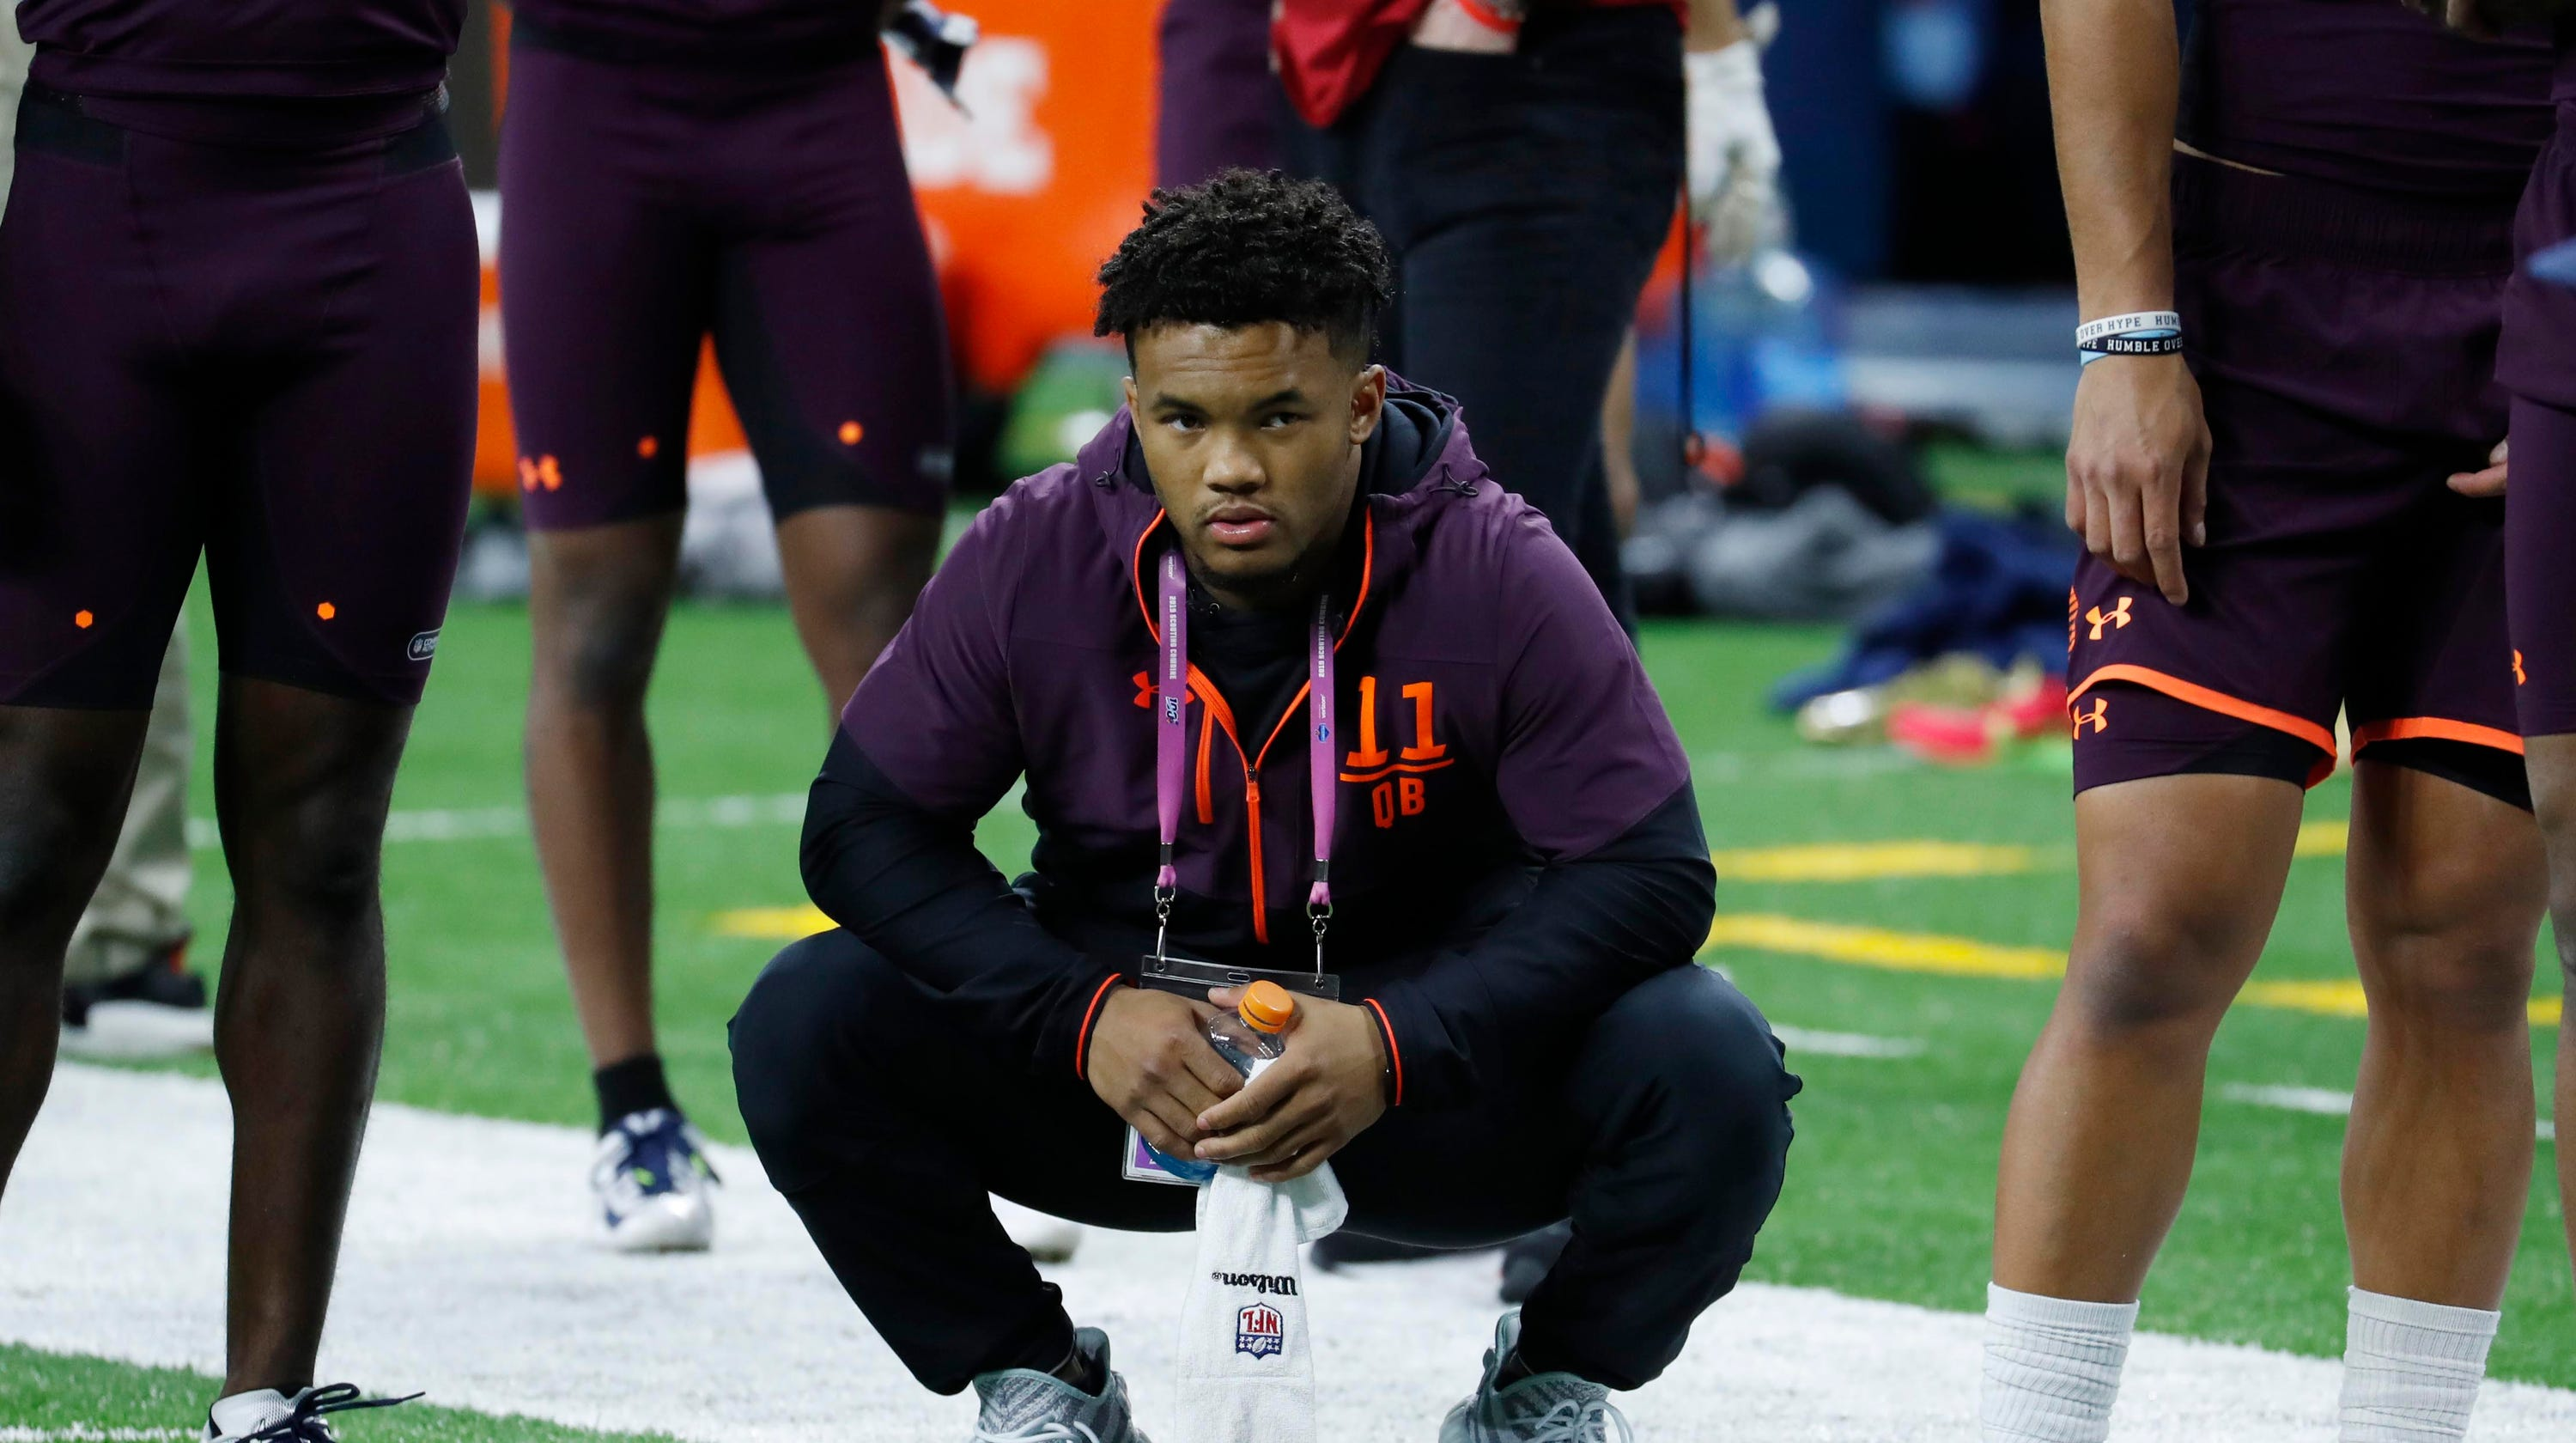 Kyler Murray NFL combine height measurement questioned 2019 NFL draft e158f251a2